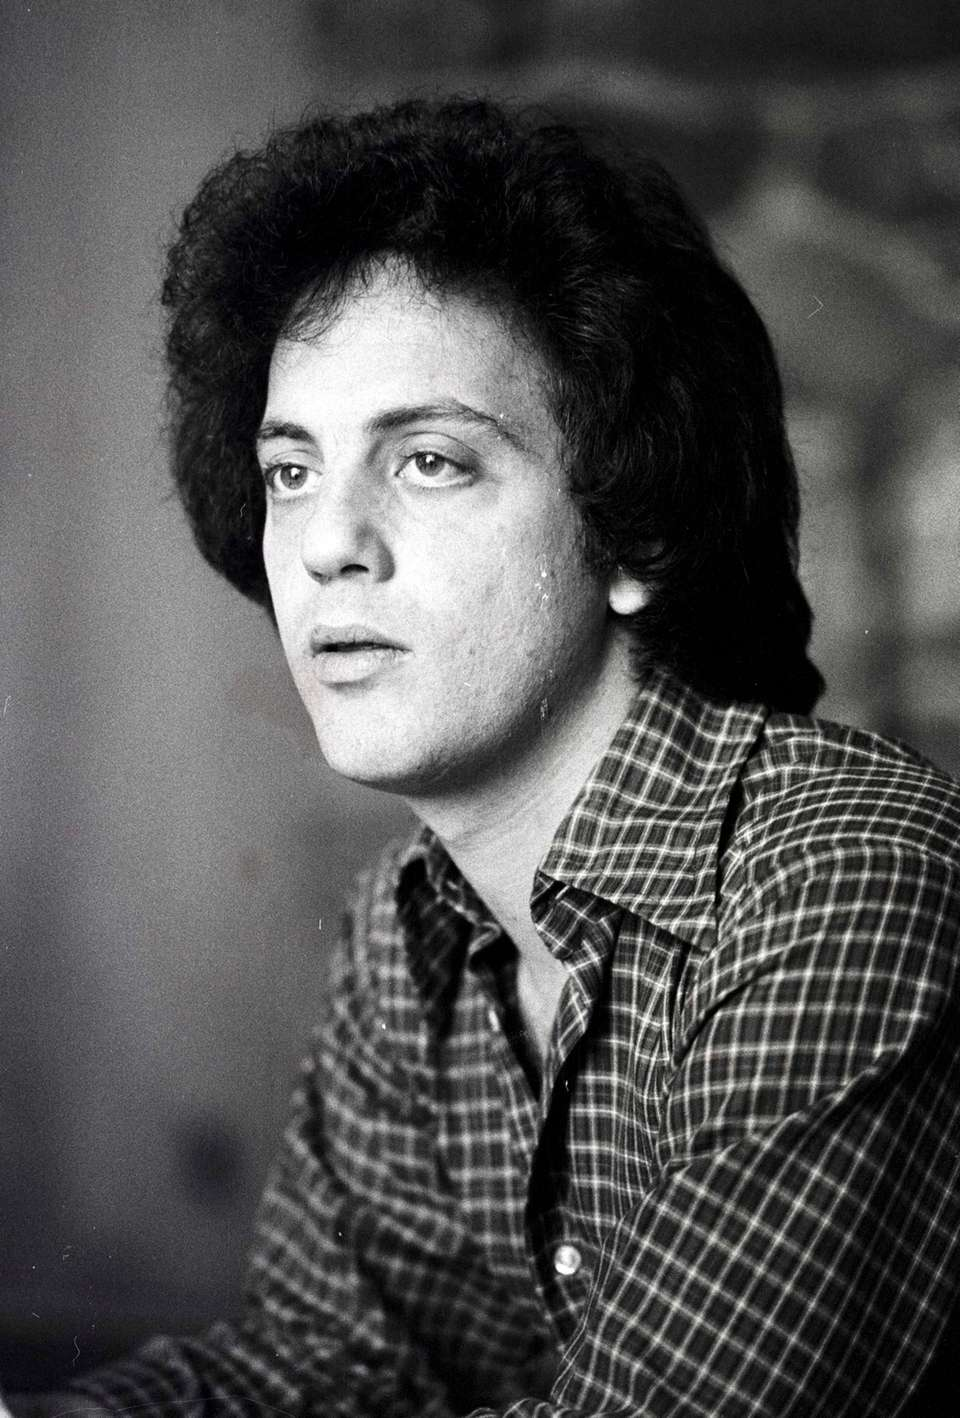 June 15, 1972: Billy Joel performs at Wollman